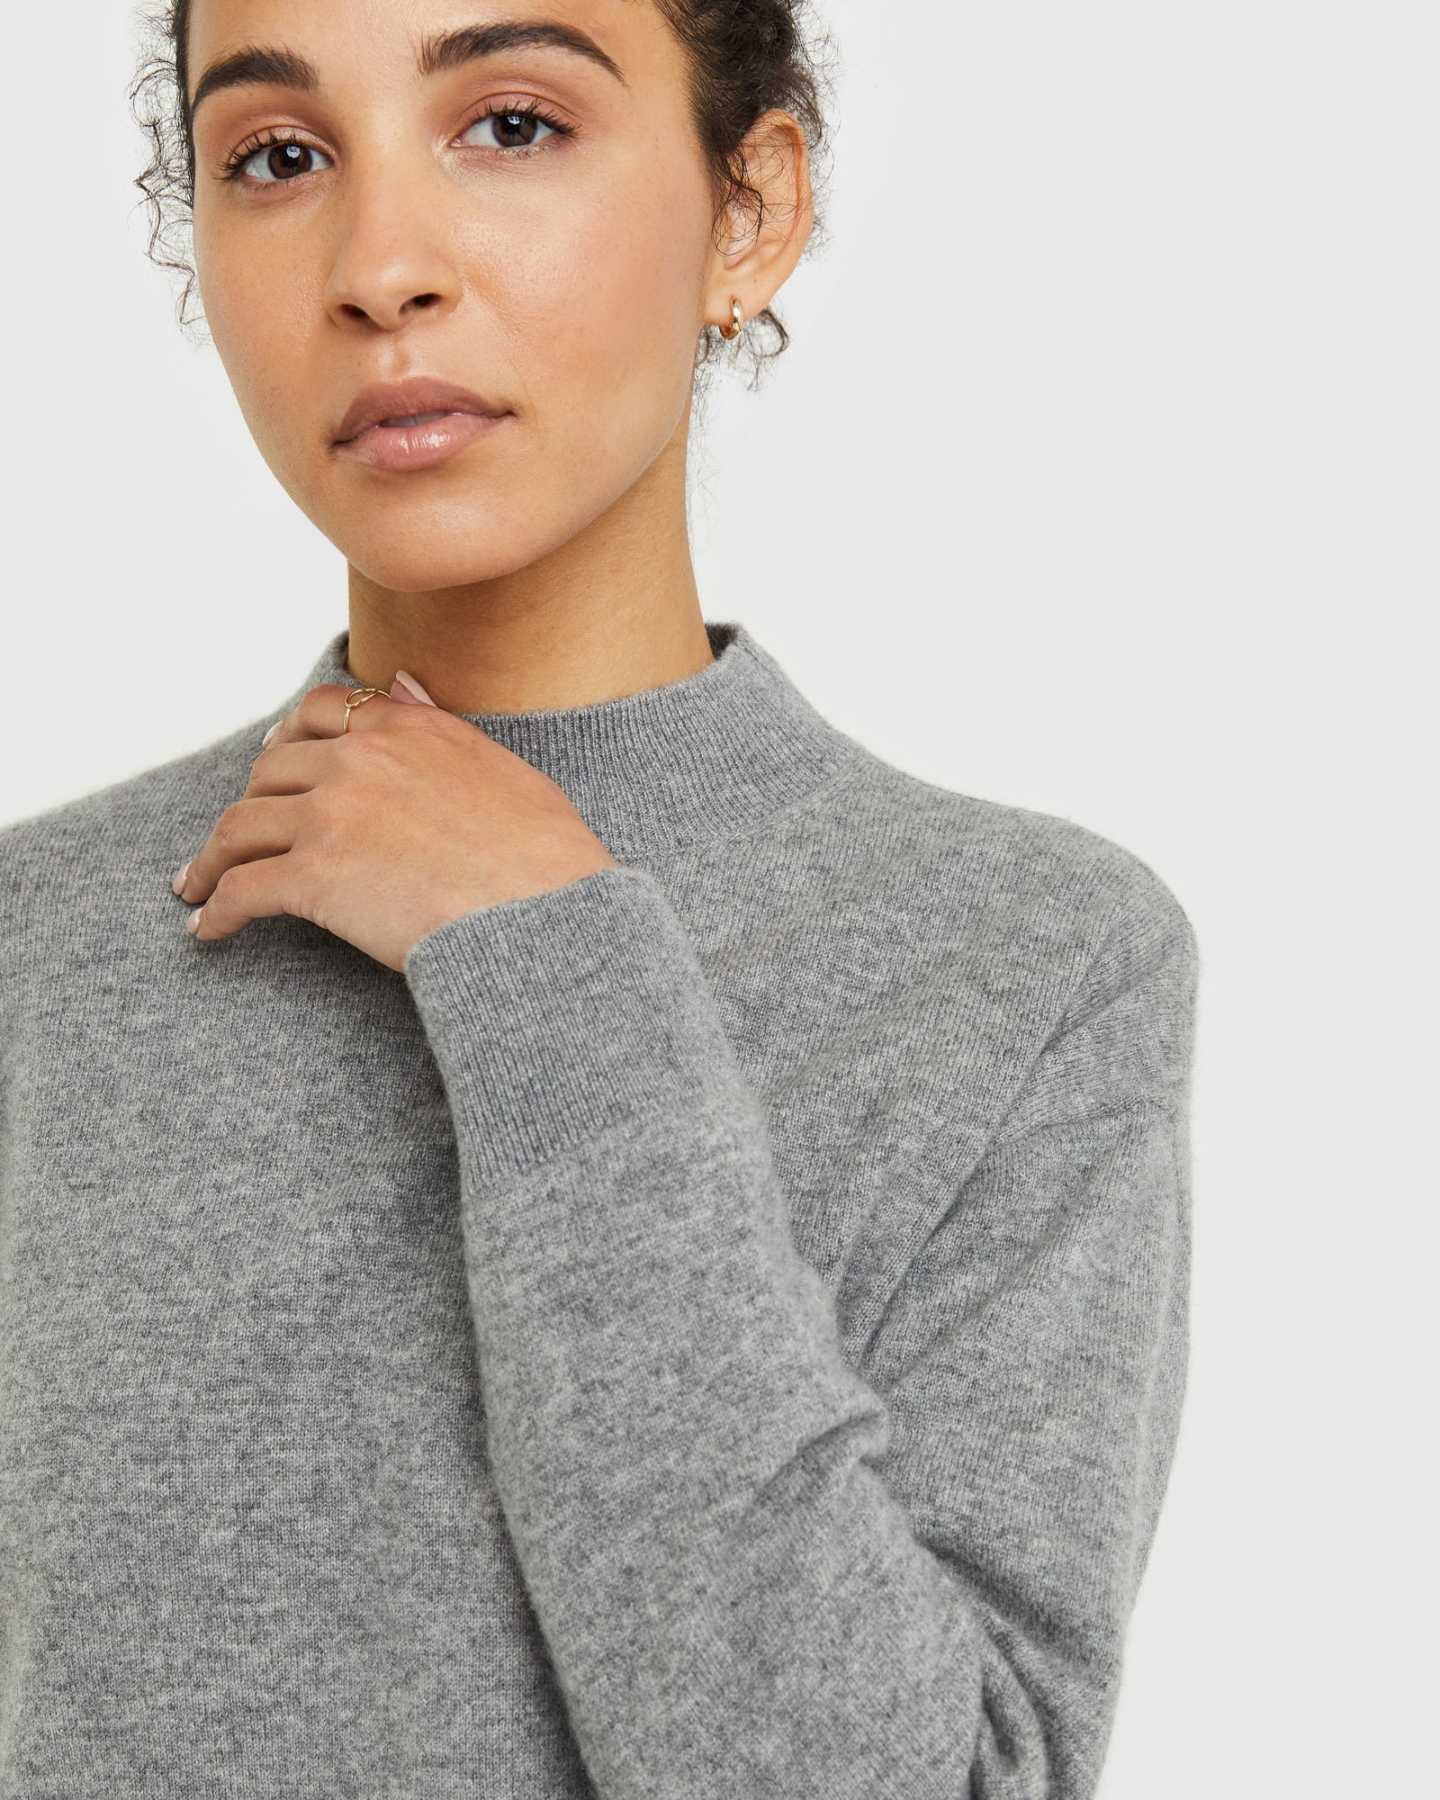 Woman wearing grey cashmere mockneck sweater zoomed in